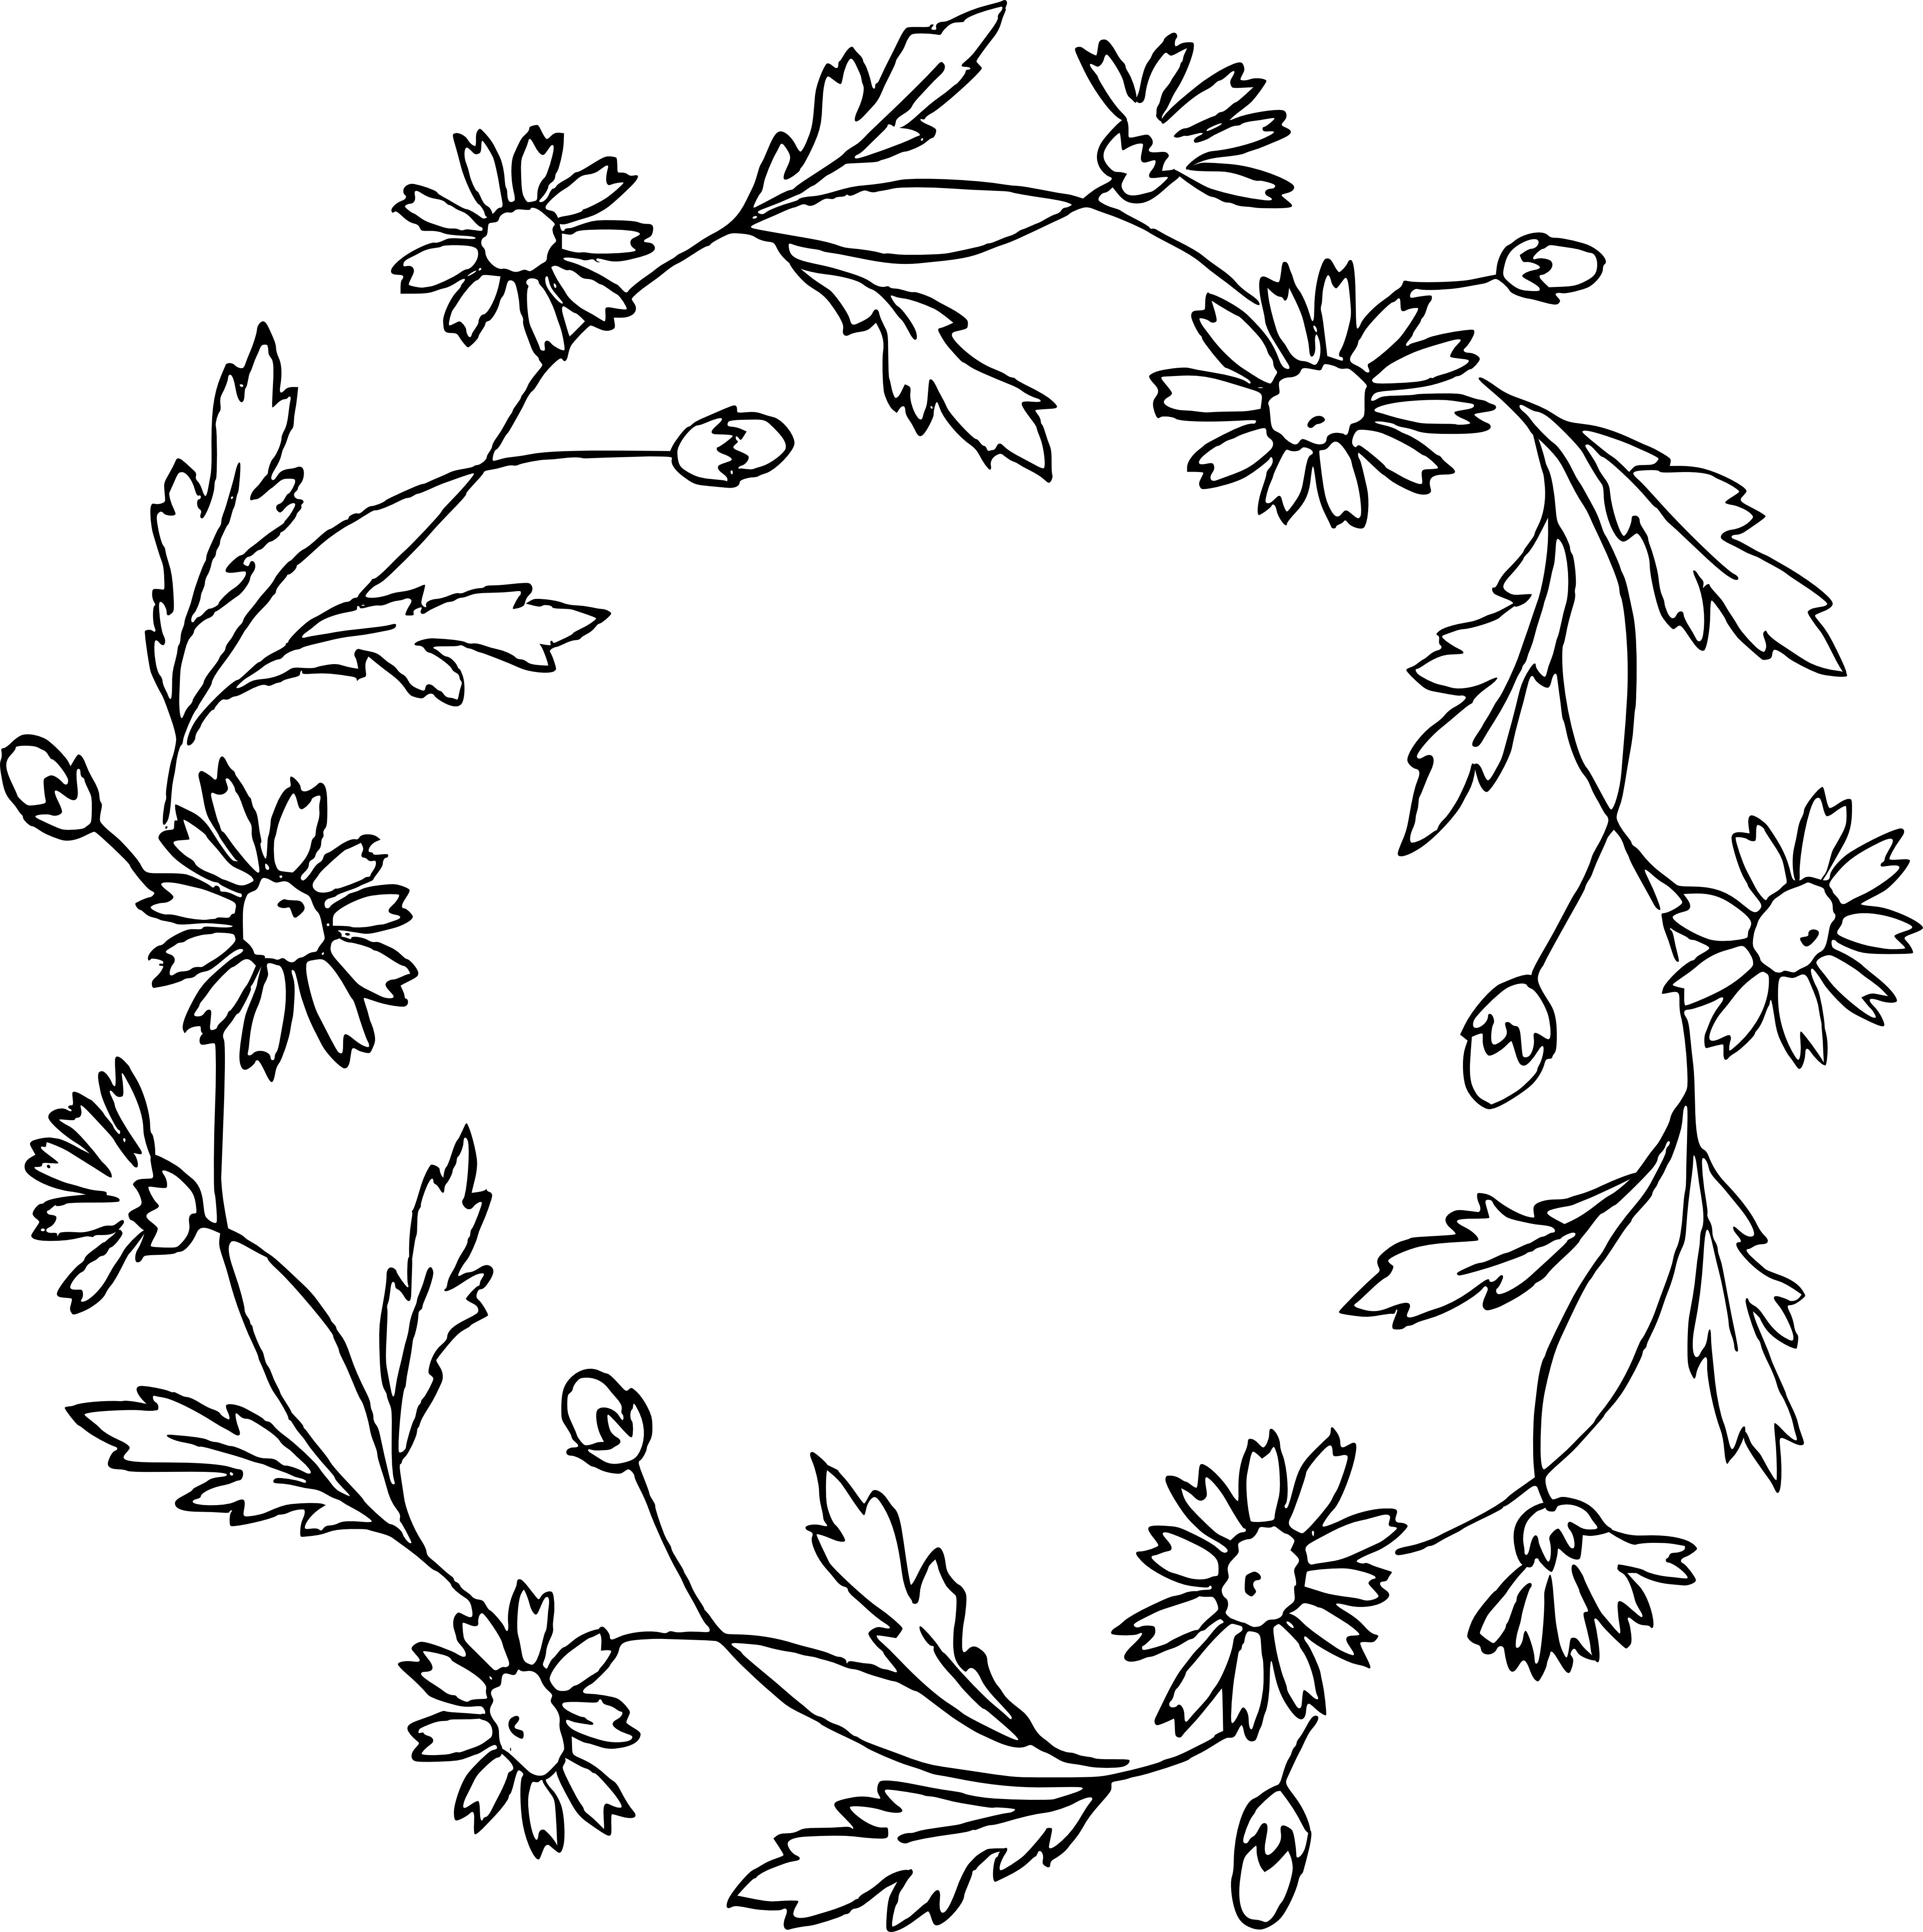 small resolution of daisy flower cip art silhouette floral wreath clip art vector images 4686 4707